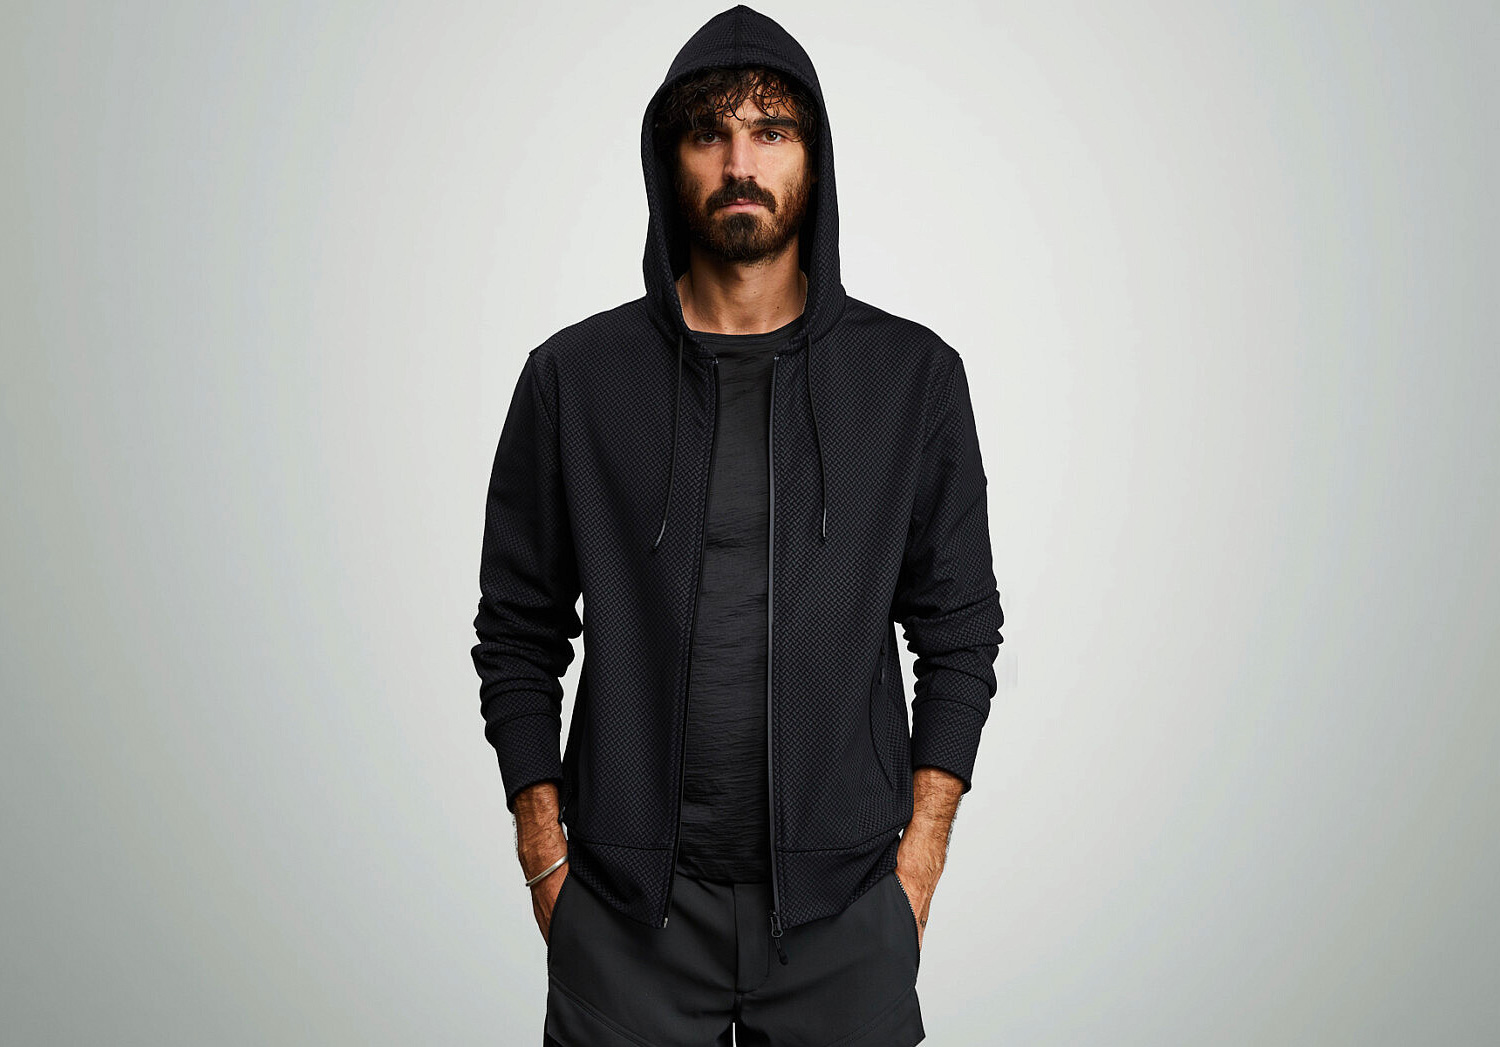 Ceramic Makes This Hoodie Virtually Indestructible at werd.com